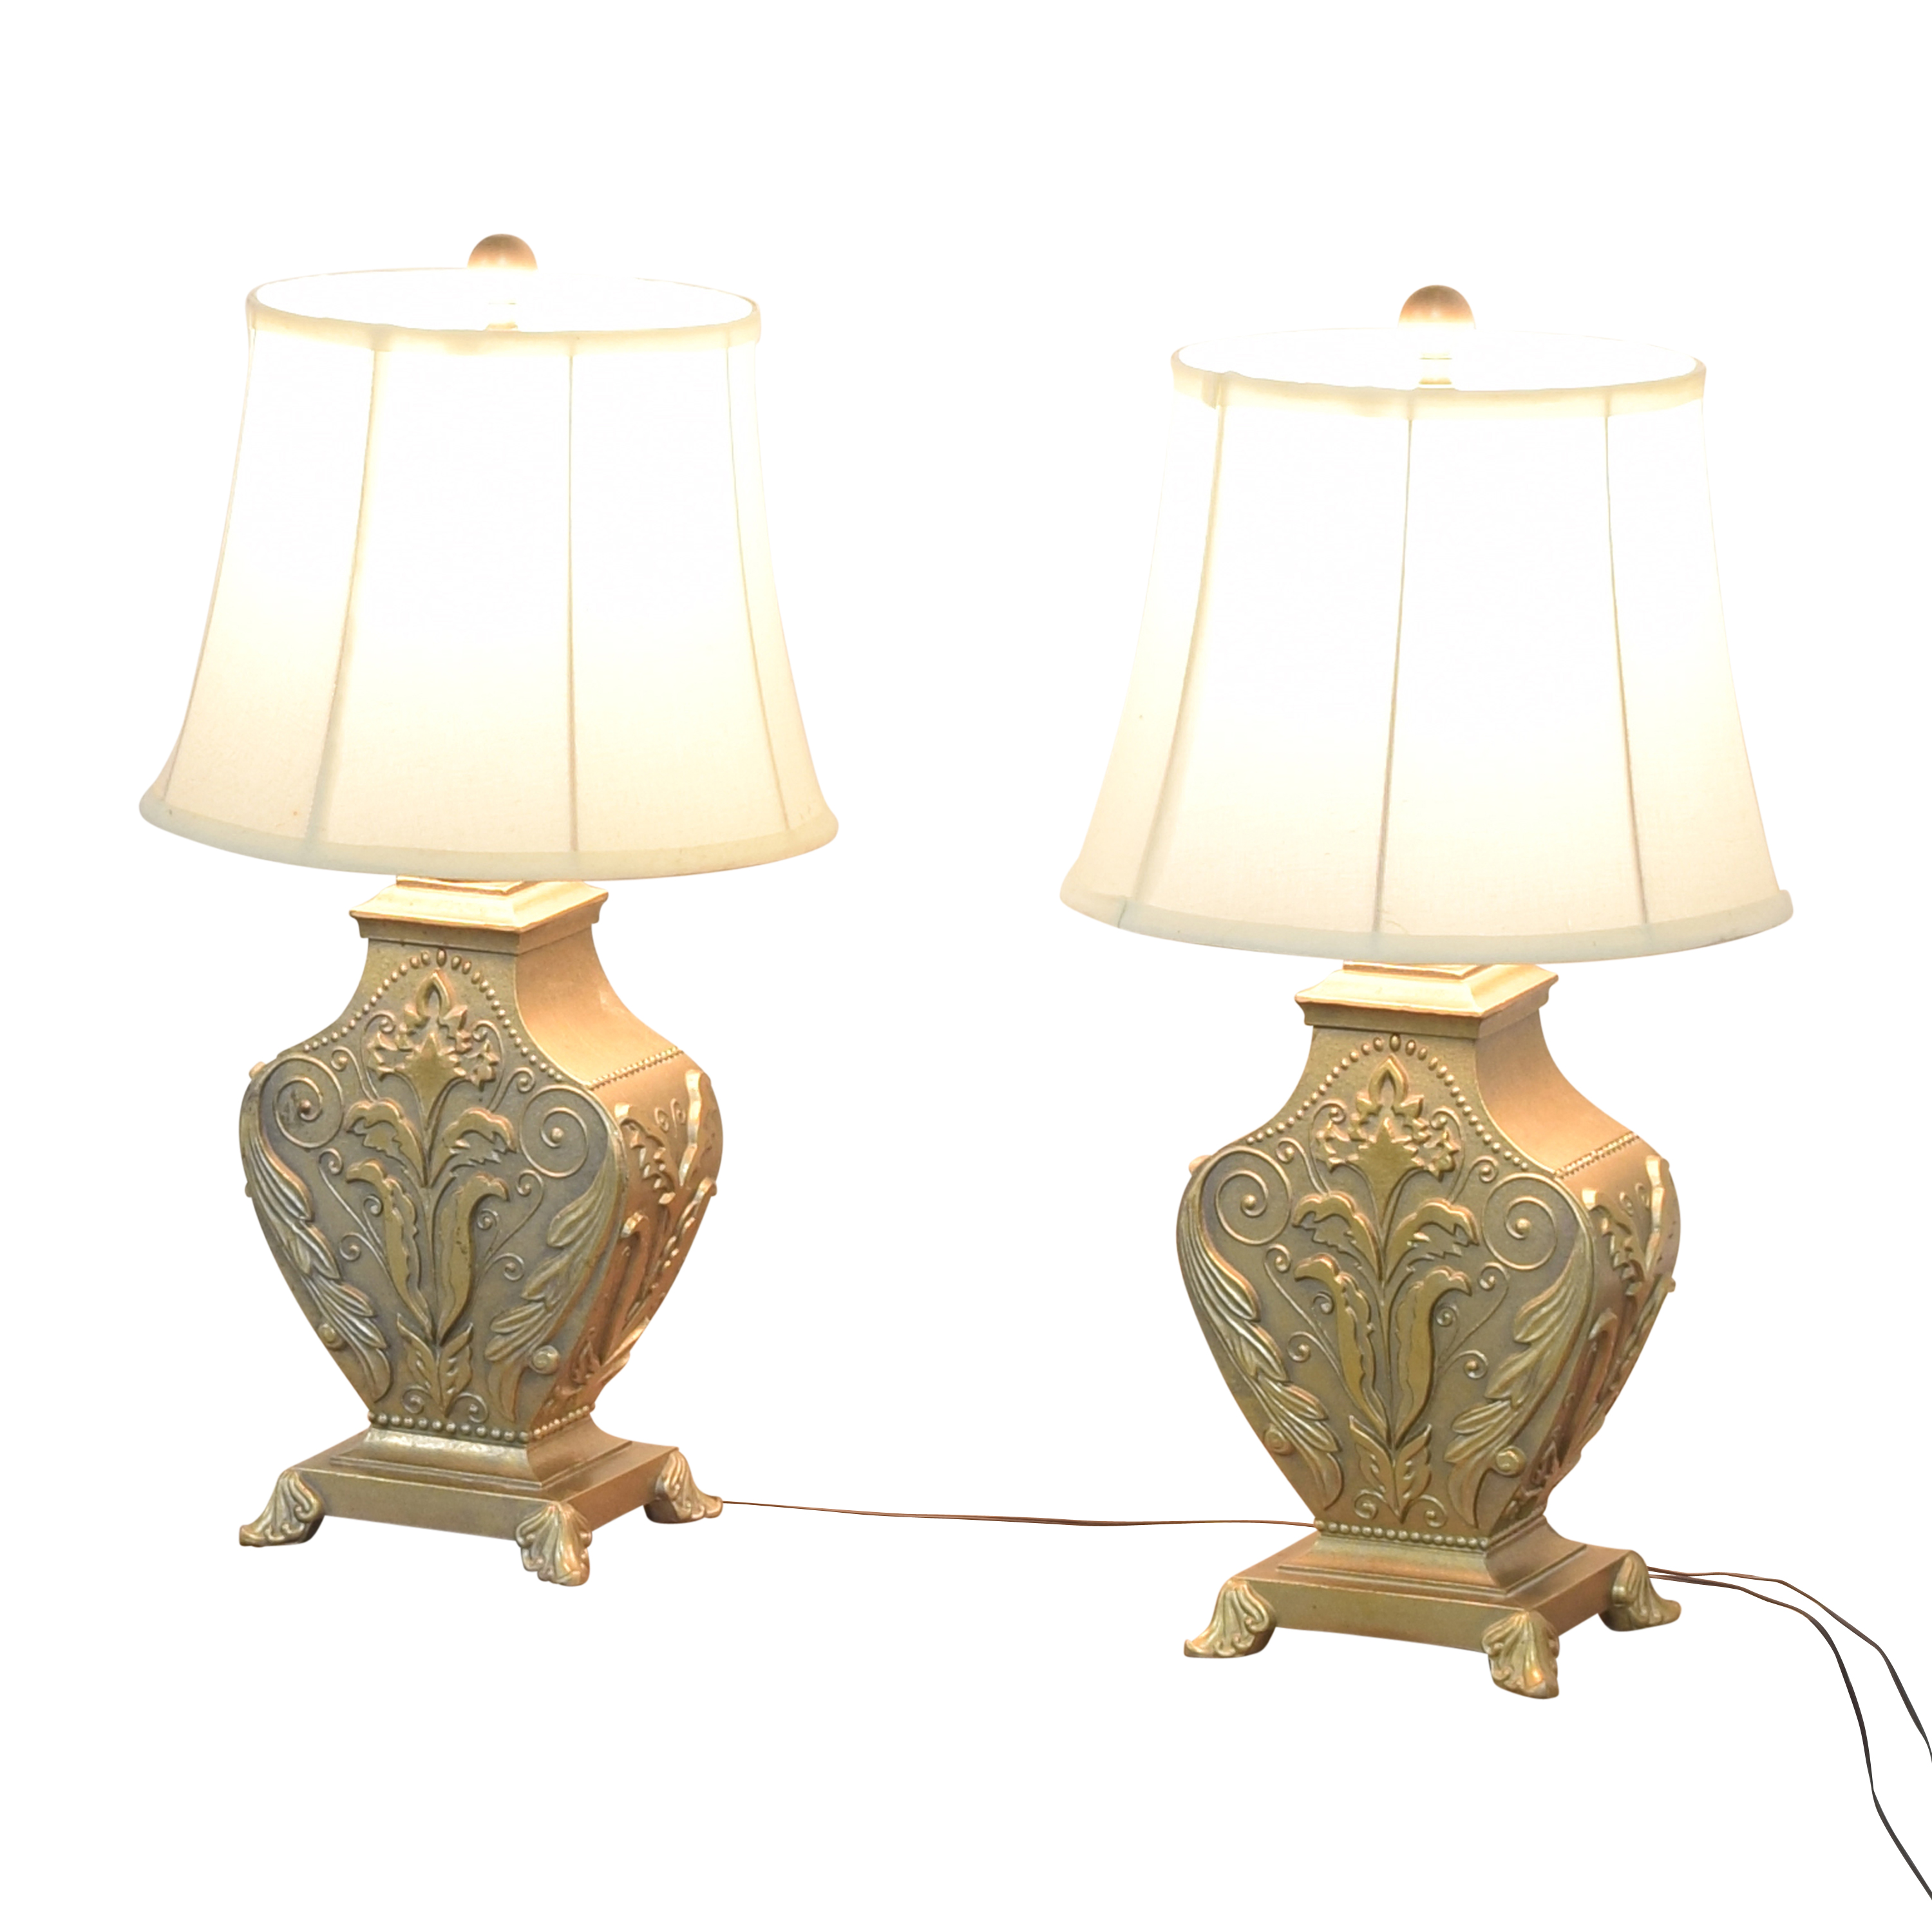 Restoration Hardware Restoration Hardware Table Lamps price